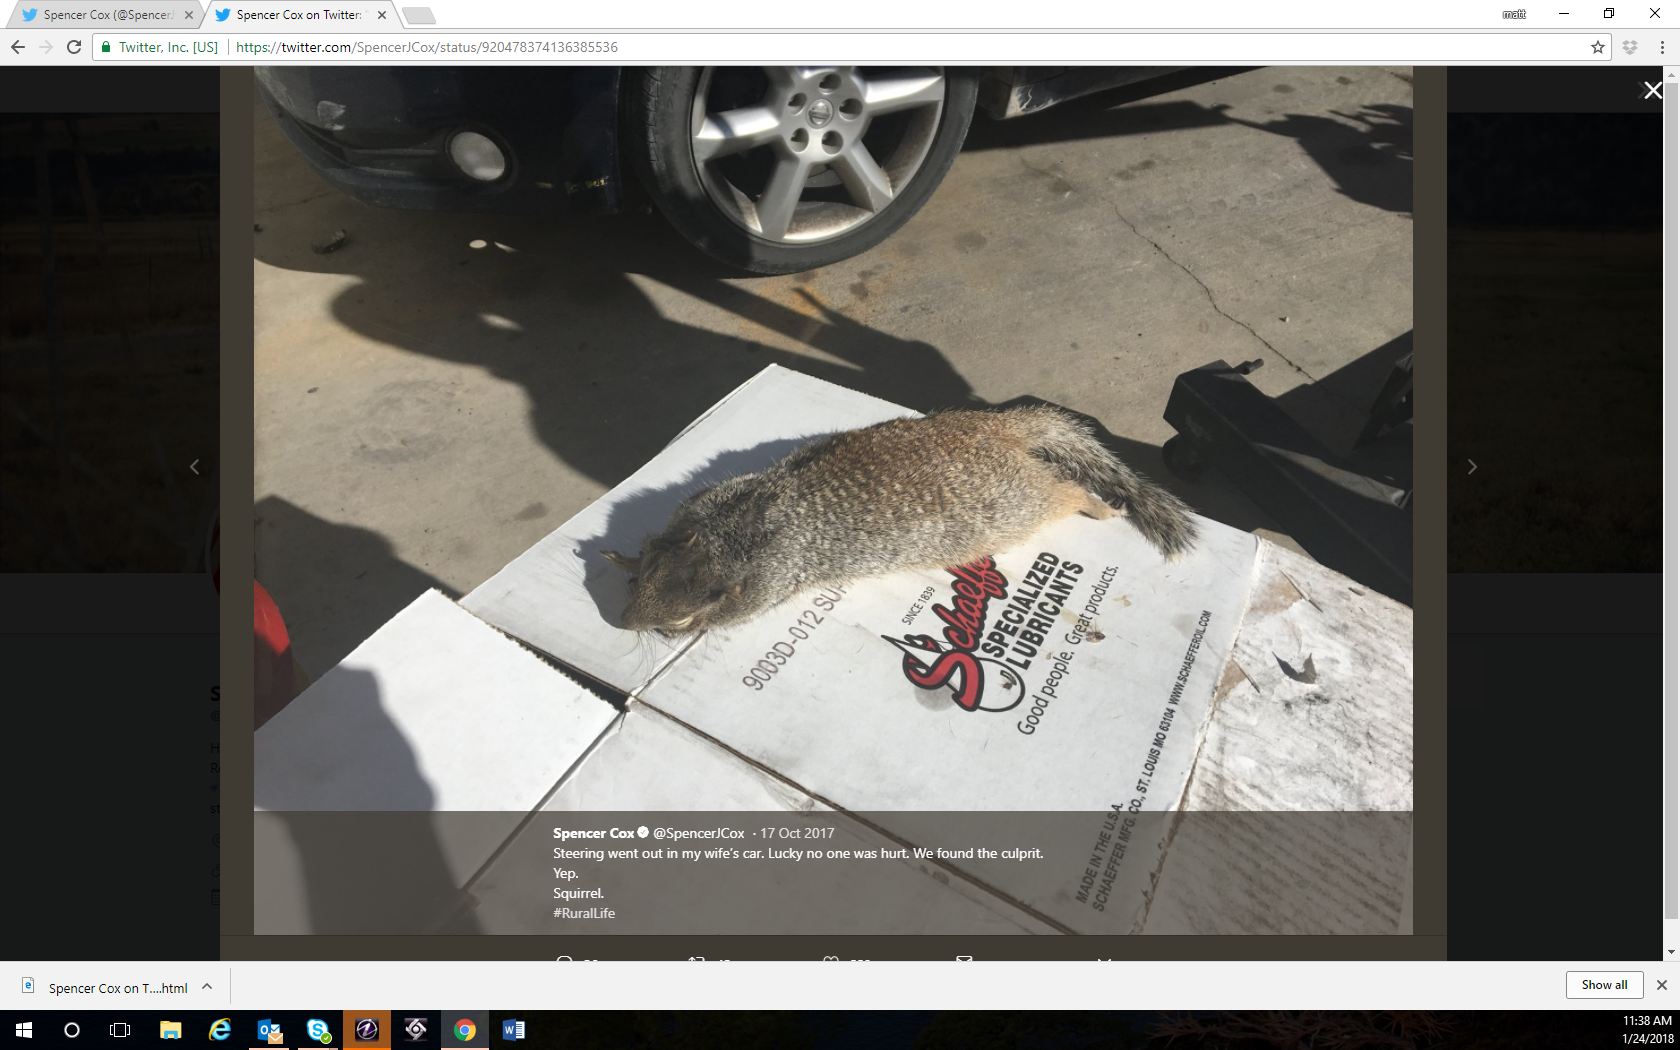 Late last year, Utah's Lt. Governor, Spencer Cox, was having some car trouble. He lamented on twitter that the steering went out. His mechanic found the culprit. A squirrel, looking for a warm bed, had snuck under the hood and destroyed some wires.